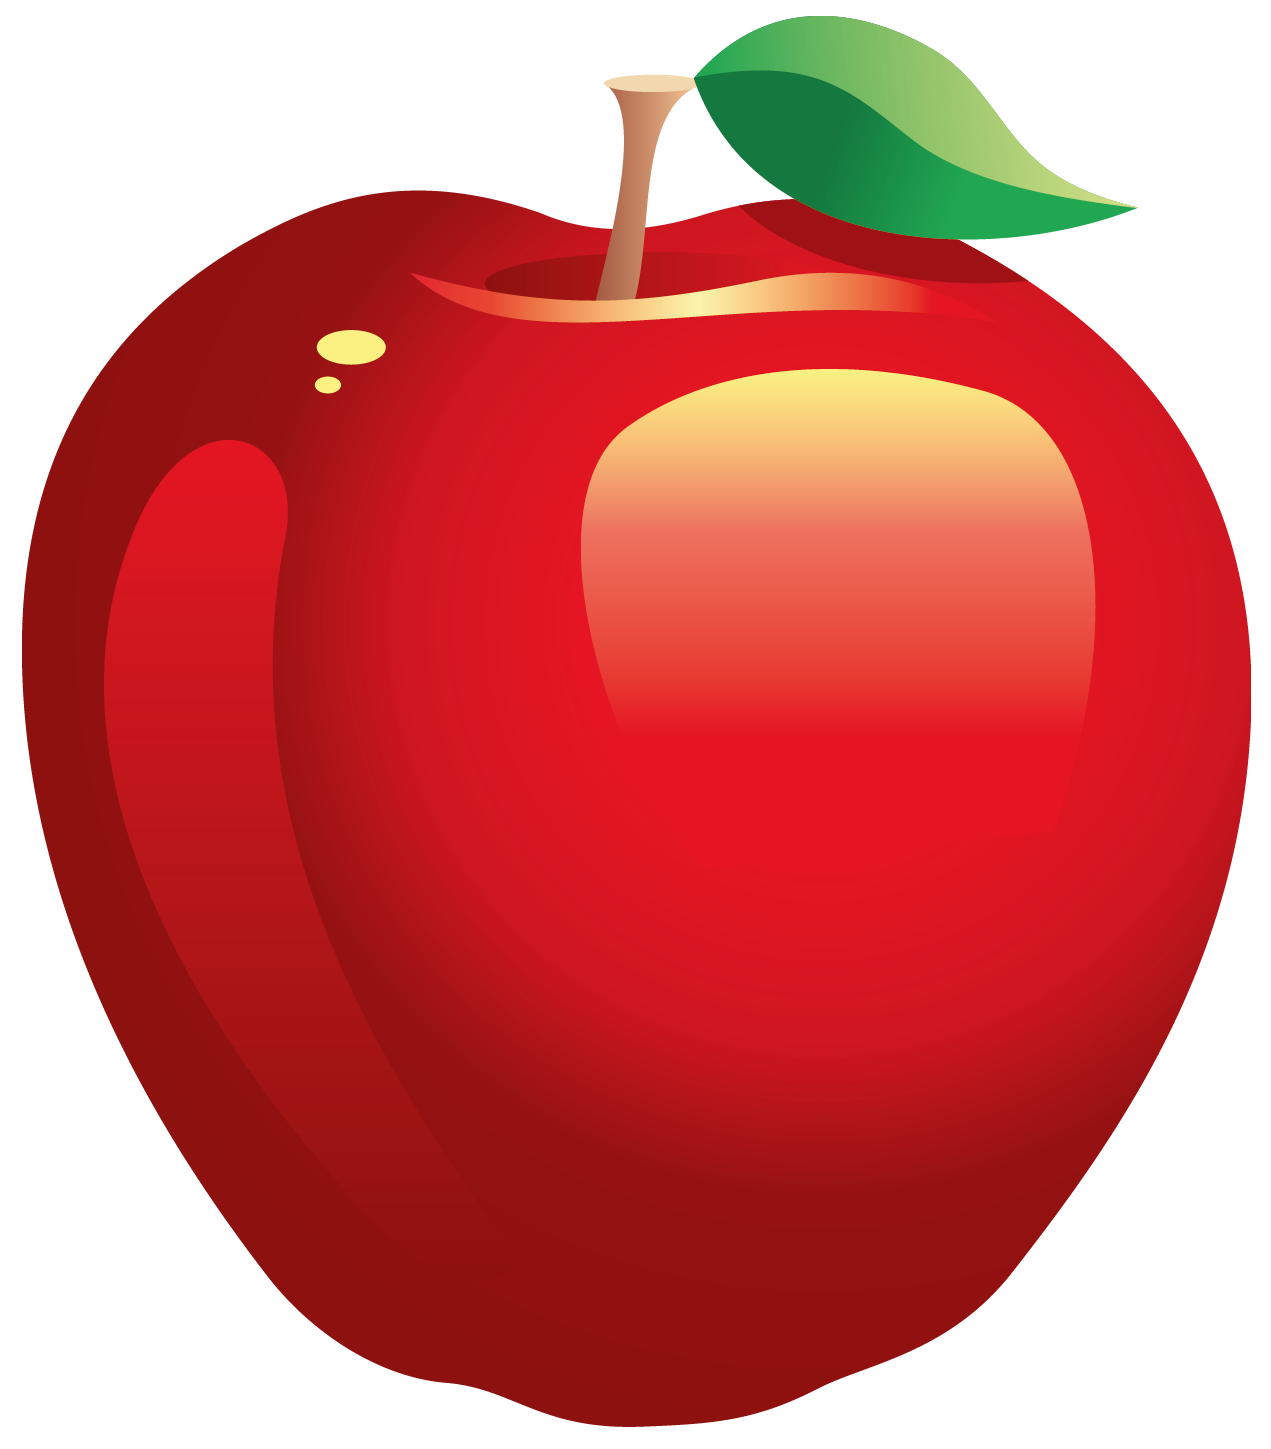 Clip Art Apple Ios Clipart - Clipart Kid